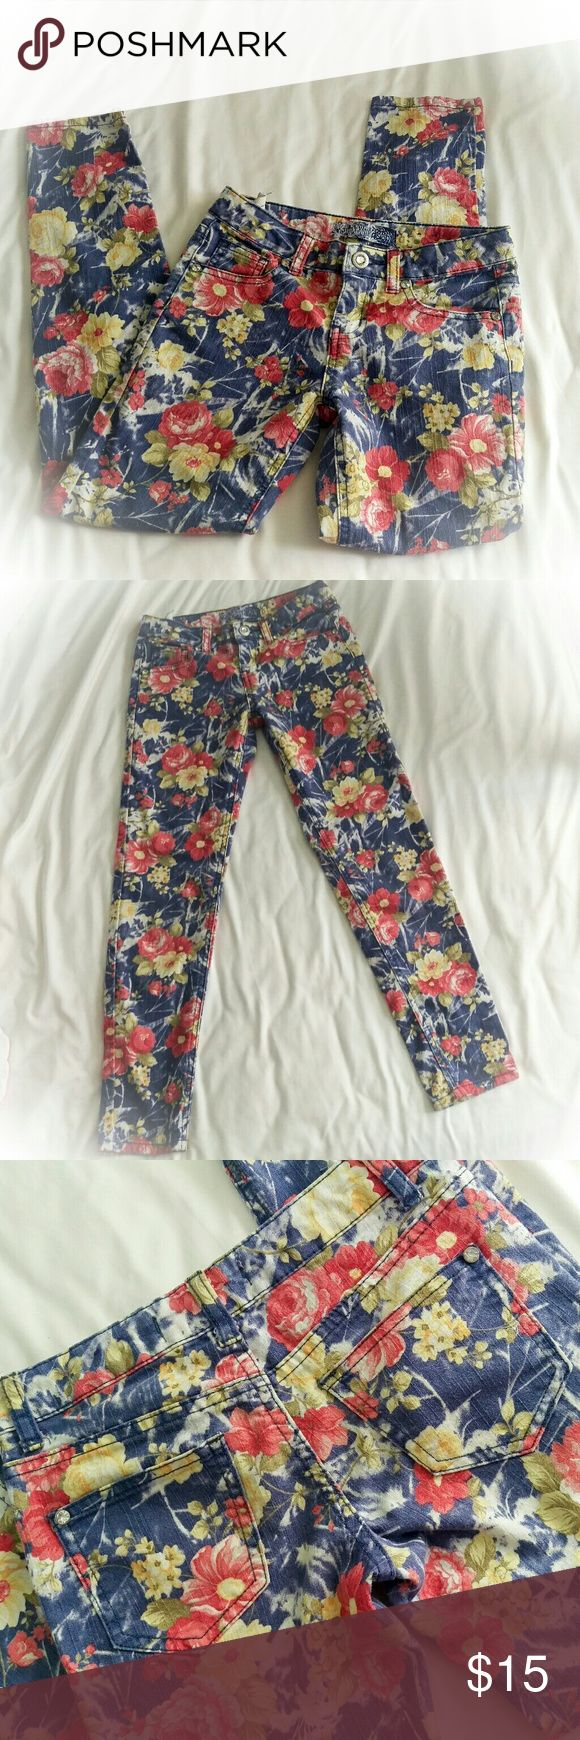 Girls' Karma Blue floral jeans Really cool vintage-style floral skinny jeans in excellent condition, no defects! They have an adjustable waist. Brand is Karma Blue, who has unfortunately stopped producing but used to sell their boho/rocker style denim at stores like Urban Outfitters, Tilly's and Charlotte Russe. I wish they'd come back because they made the greatest jeans. Scoop them up before they all disappear! Karma Blue  Bottoms Jeans